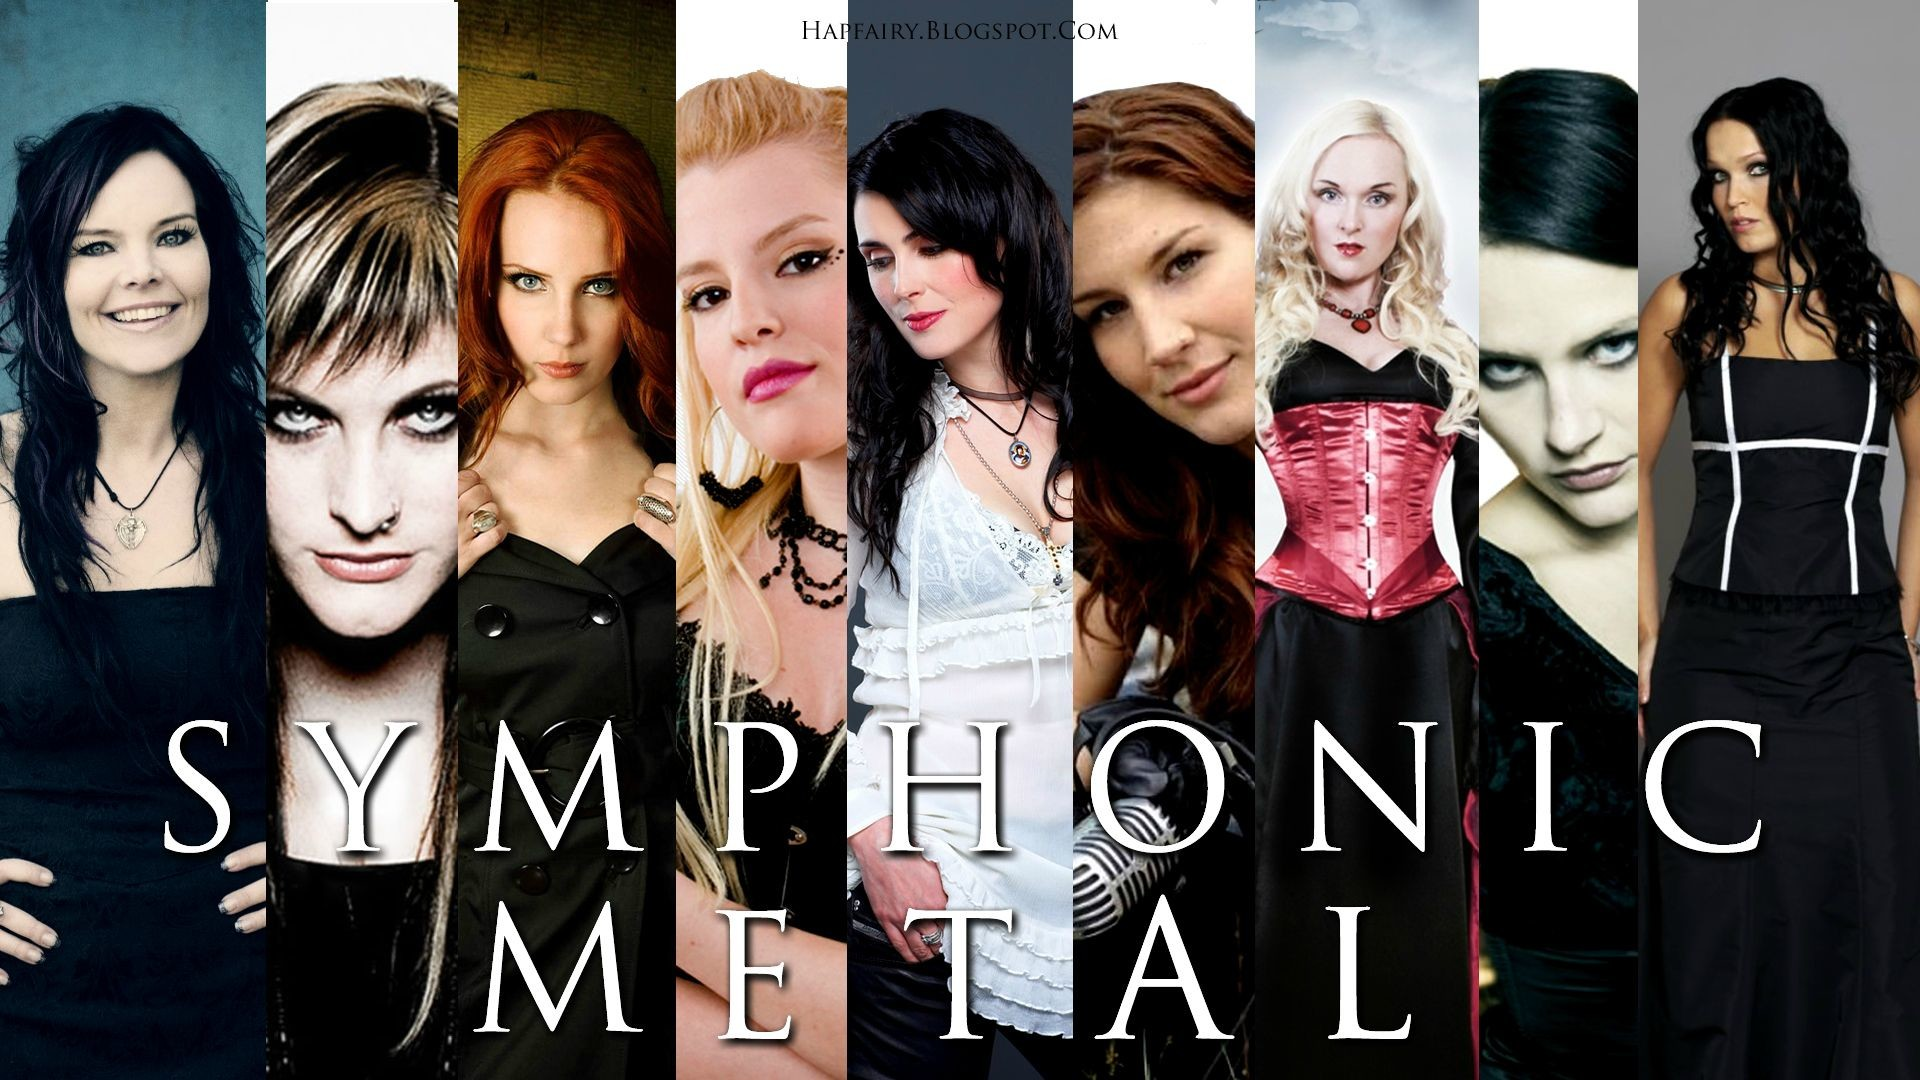 1920x1080 Symphonic Metal Wallpapers by Hapfairy